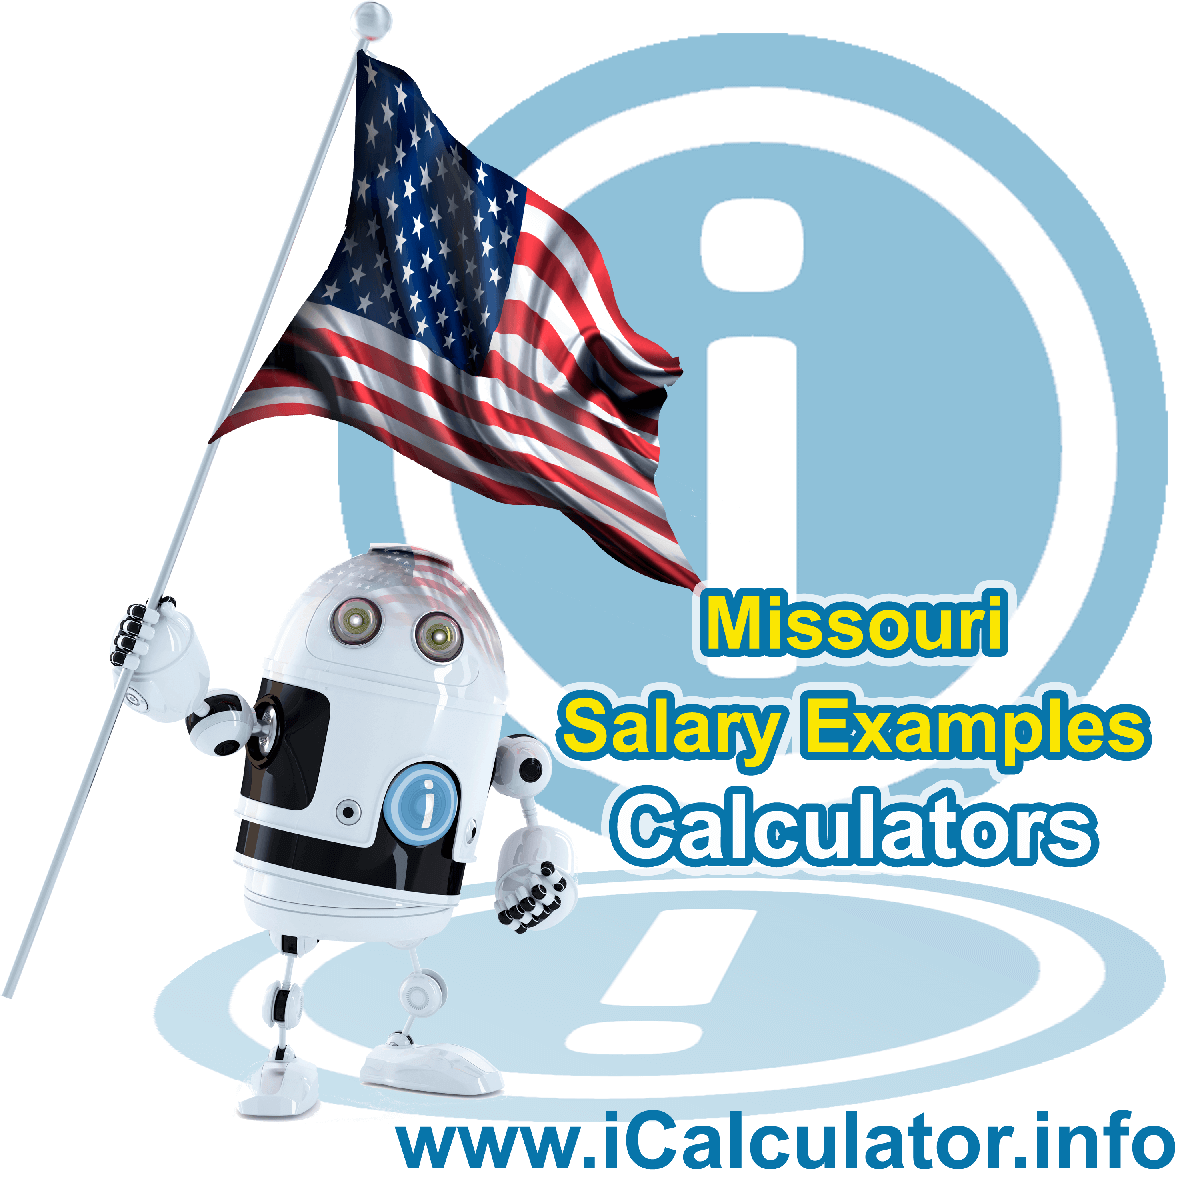 Missouri Salary Example for $270.00 in 2020 | iCalculator | $270.00 salary example for employee and employer paying Missouri State tincome taxes. Detailed salary after tax calculation including Missouri State Tax, Federal State Tax, Medicare Deductions, Social Security, Capital Gains and other income tax and salary deductions complete with supporting Missouri state tax tables